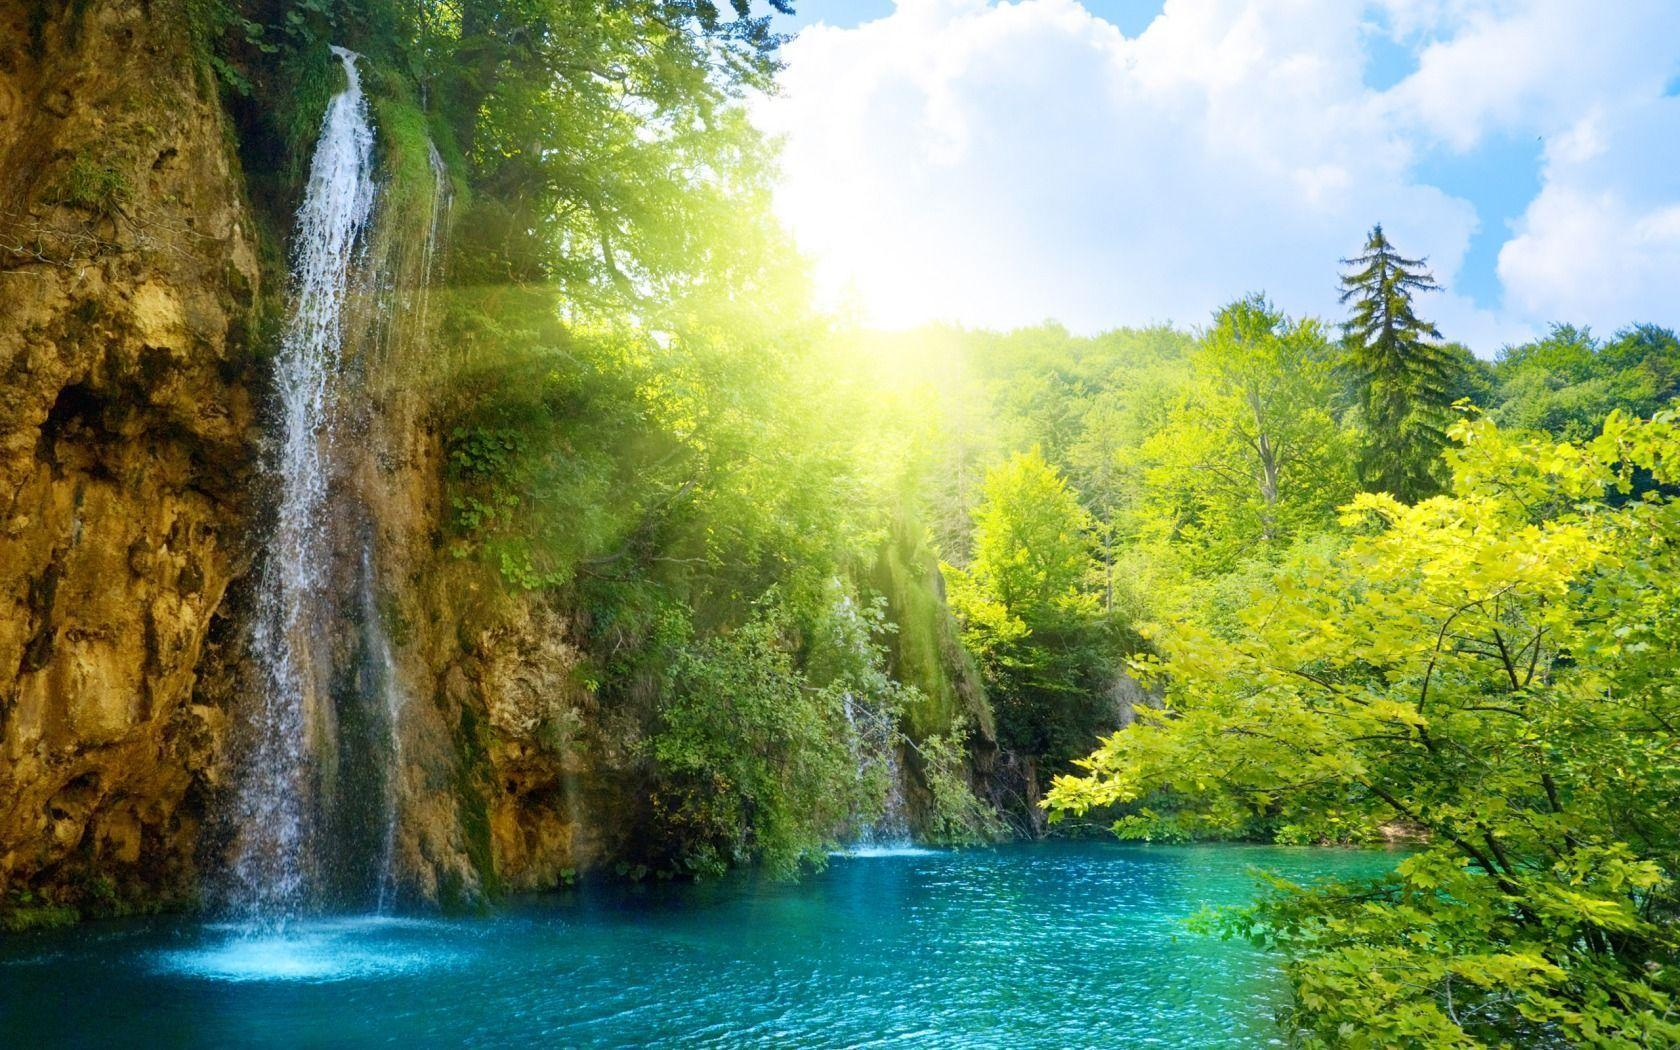 Download 3D Wallpapers Widescreen Waterfalls Hd 4928 Full HD